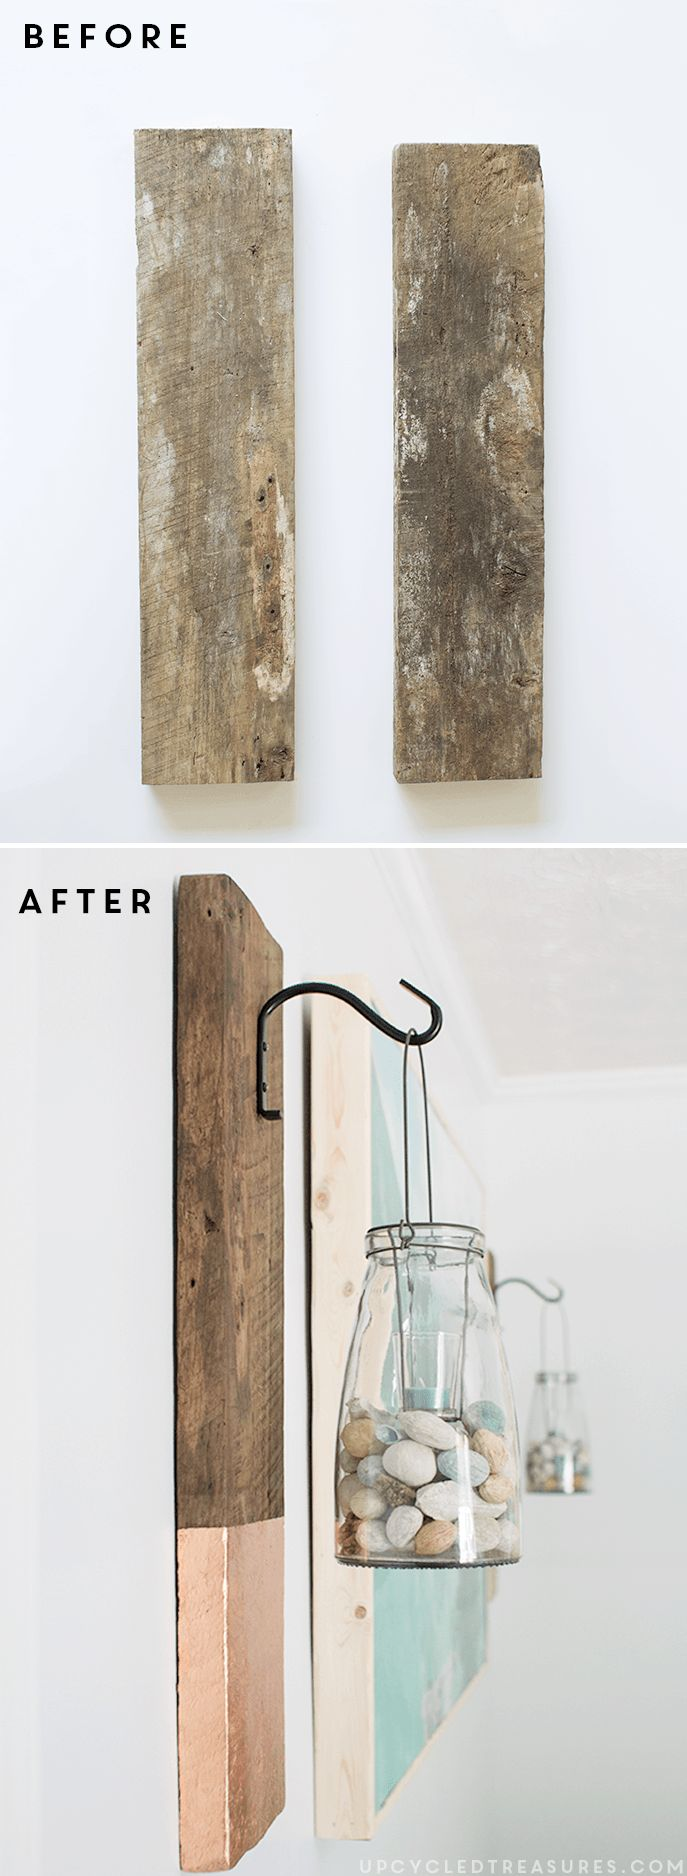 See how easy it is to create this vertical DIY Modern Rustic Wall Hanging from salvaged wood